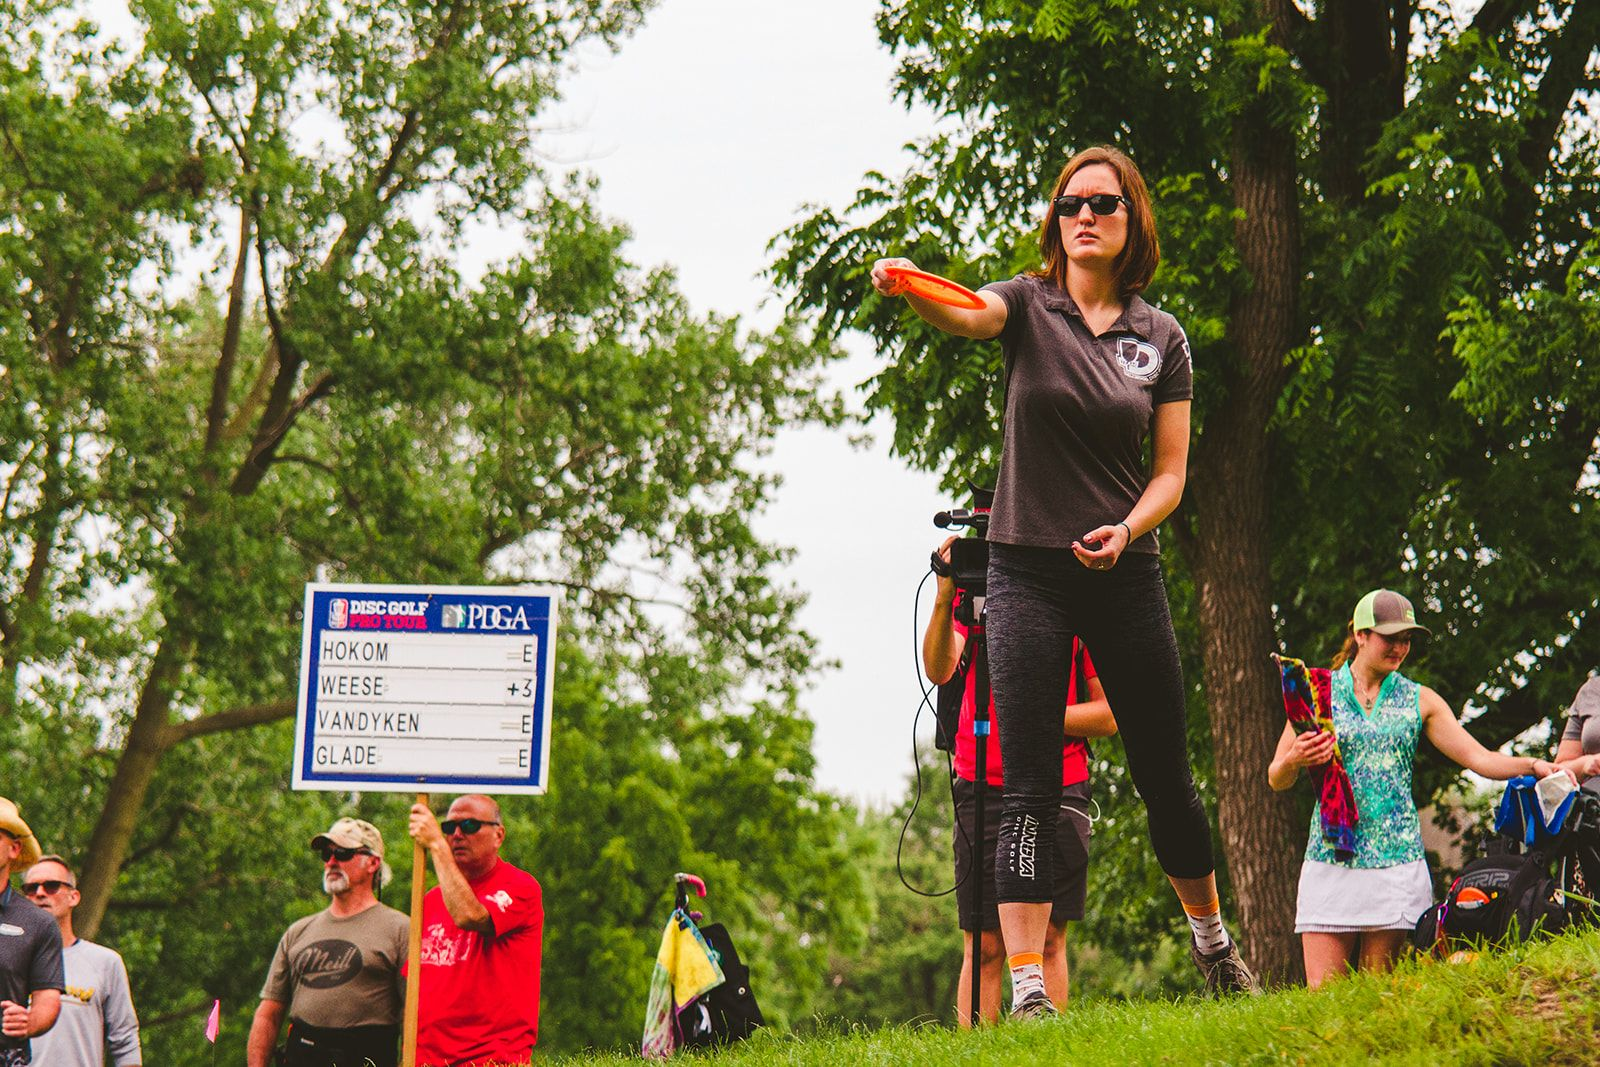 I asked a three professional disc golfers: Jessica Weese, Kacie Glade and Dan Schlitter, what their practice routines have looked like during this time. #discgolf #practice #routine #mindset #athlete #perfectputt #perfectputt360 #discgolfstrong #innovadiscs #discraftdiscgolf #golf #frisbee #frisbeegolf #covid #coronavirus #active #stayingactive #fit #fitness